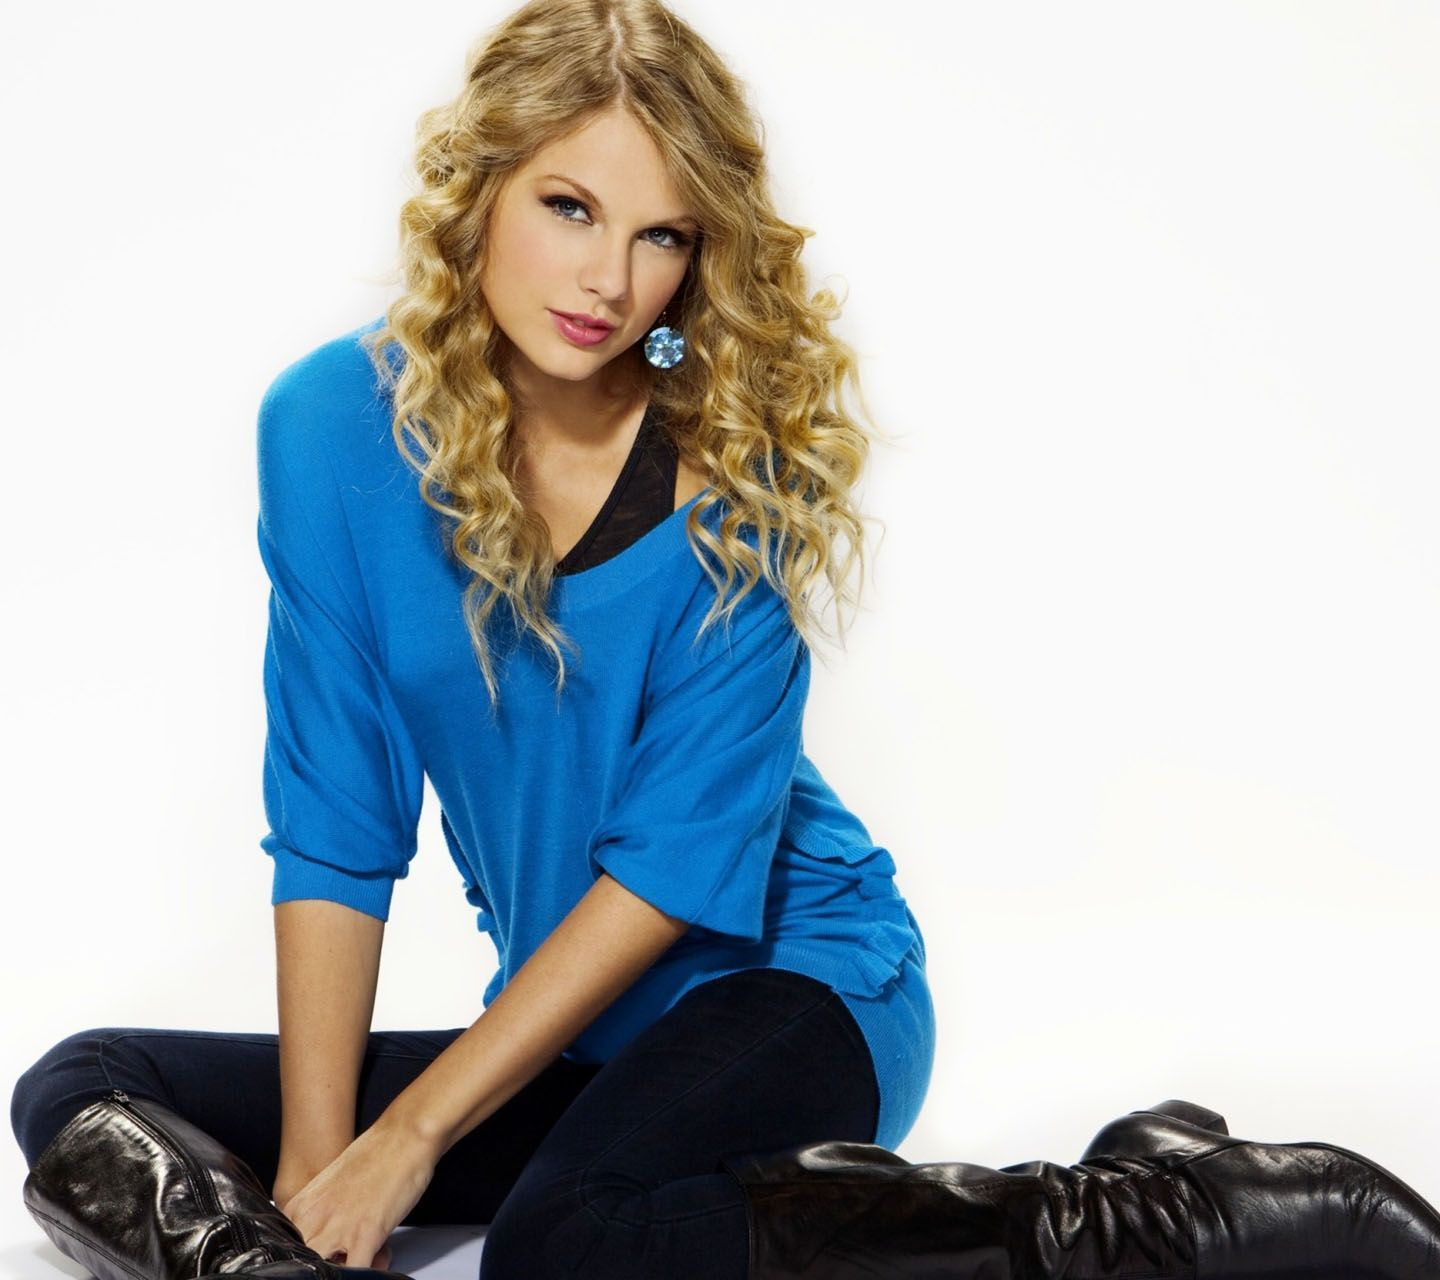 Full View and Download Taylor Swift Wallpaper 30 with resolution of 124